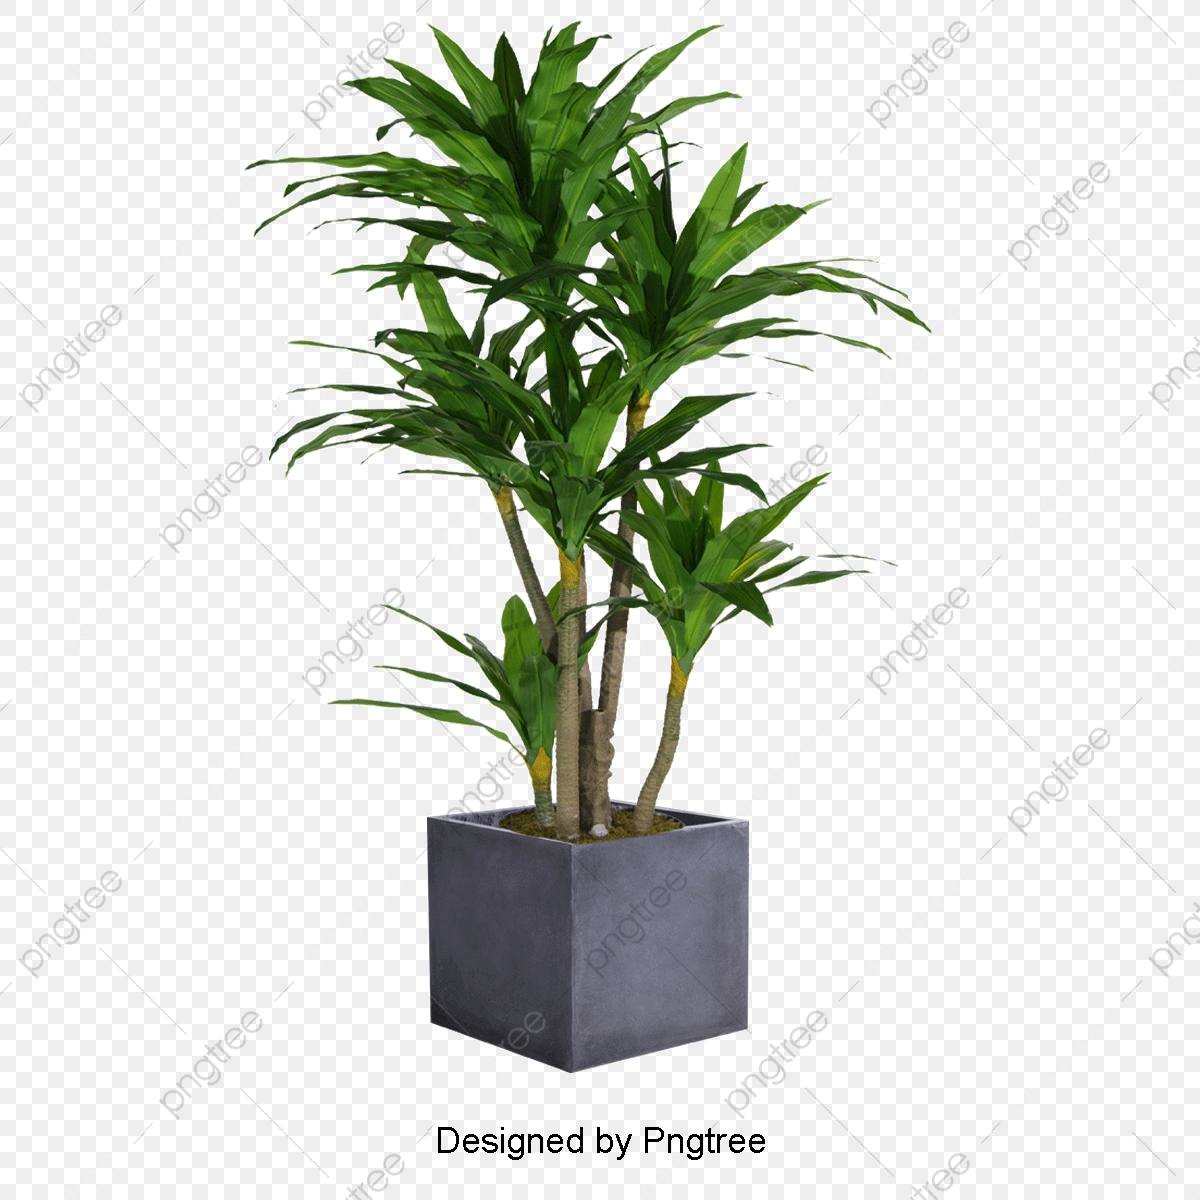 Plant, Gardening, Flower Pot PNG Transparent Clipart Image and PSD.